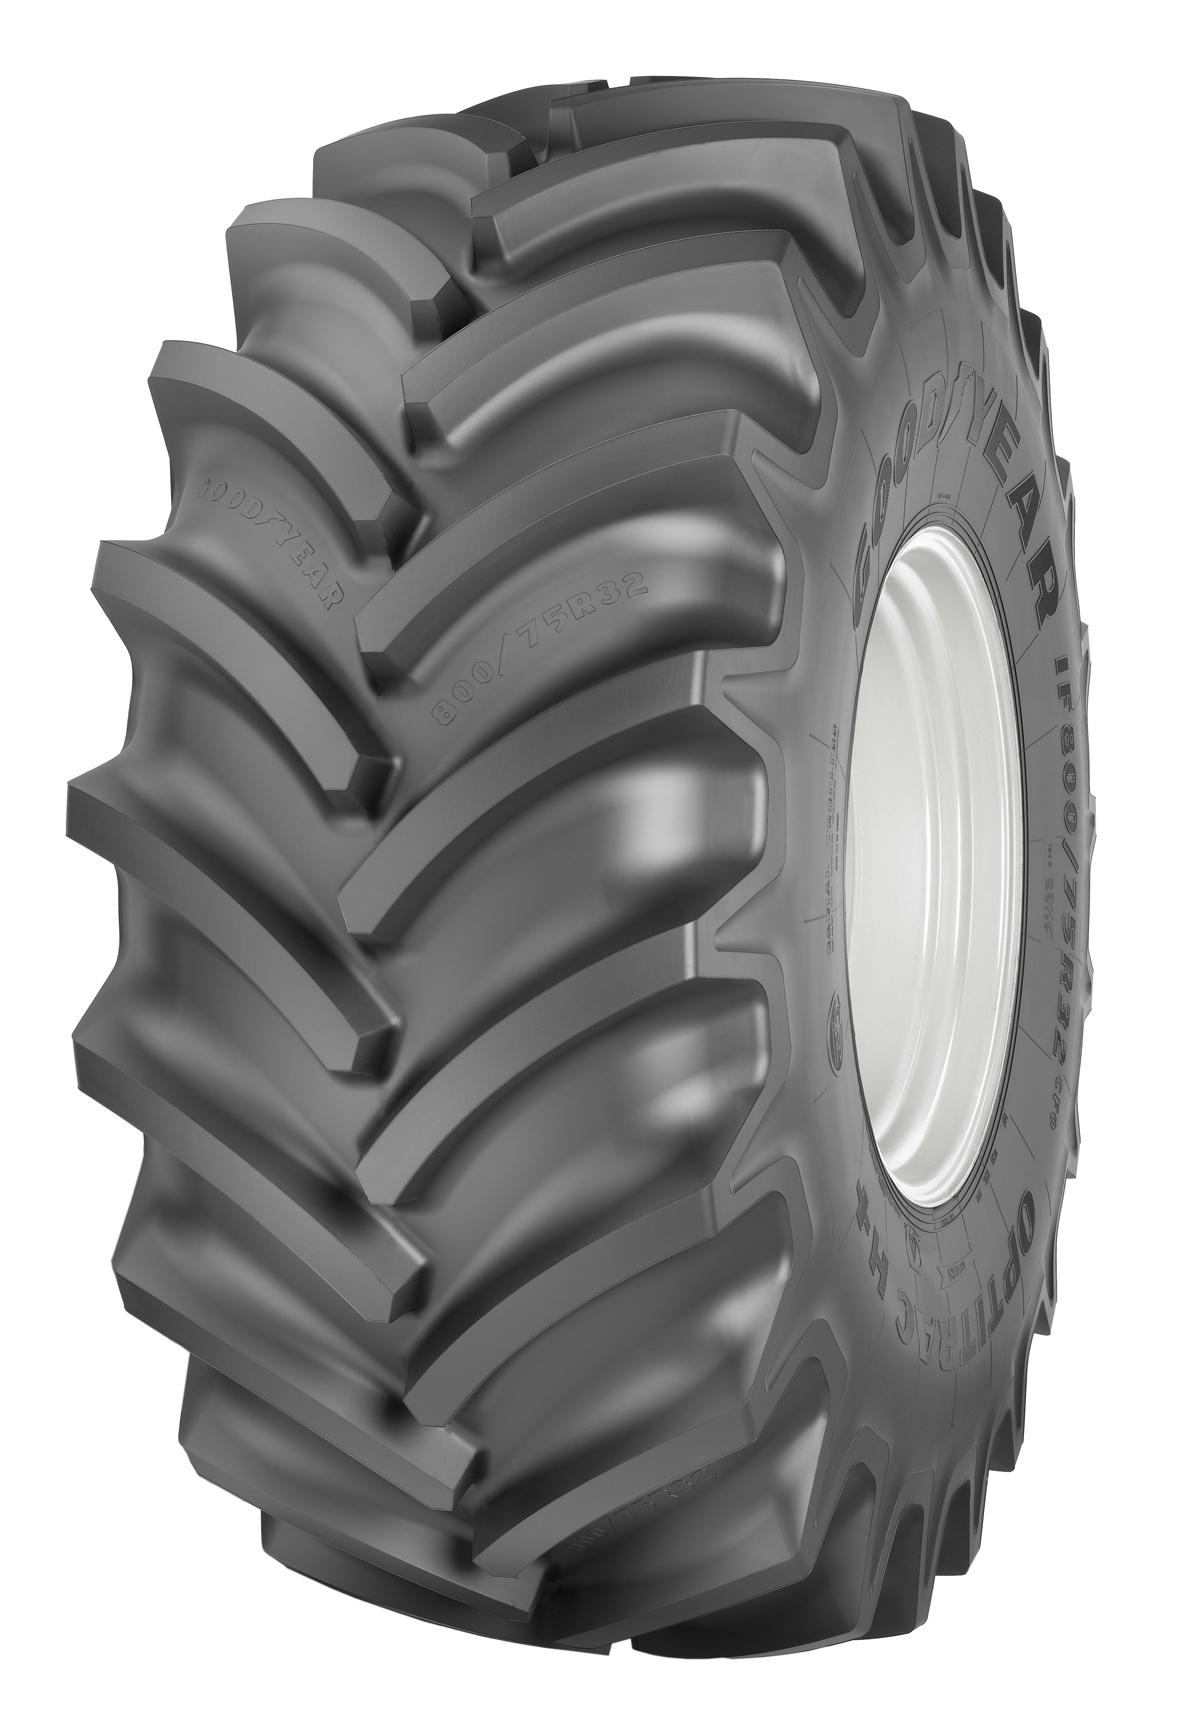 Anvelope Radiale GOODYEAR OPTITRAC R+ 600/70 R 28